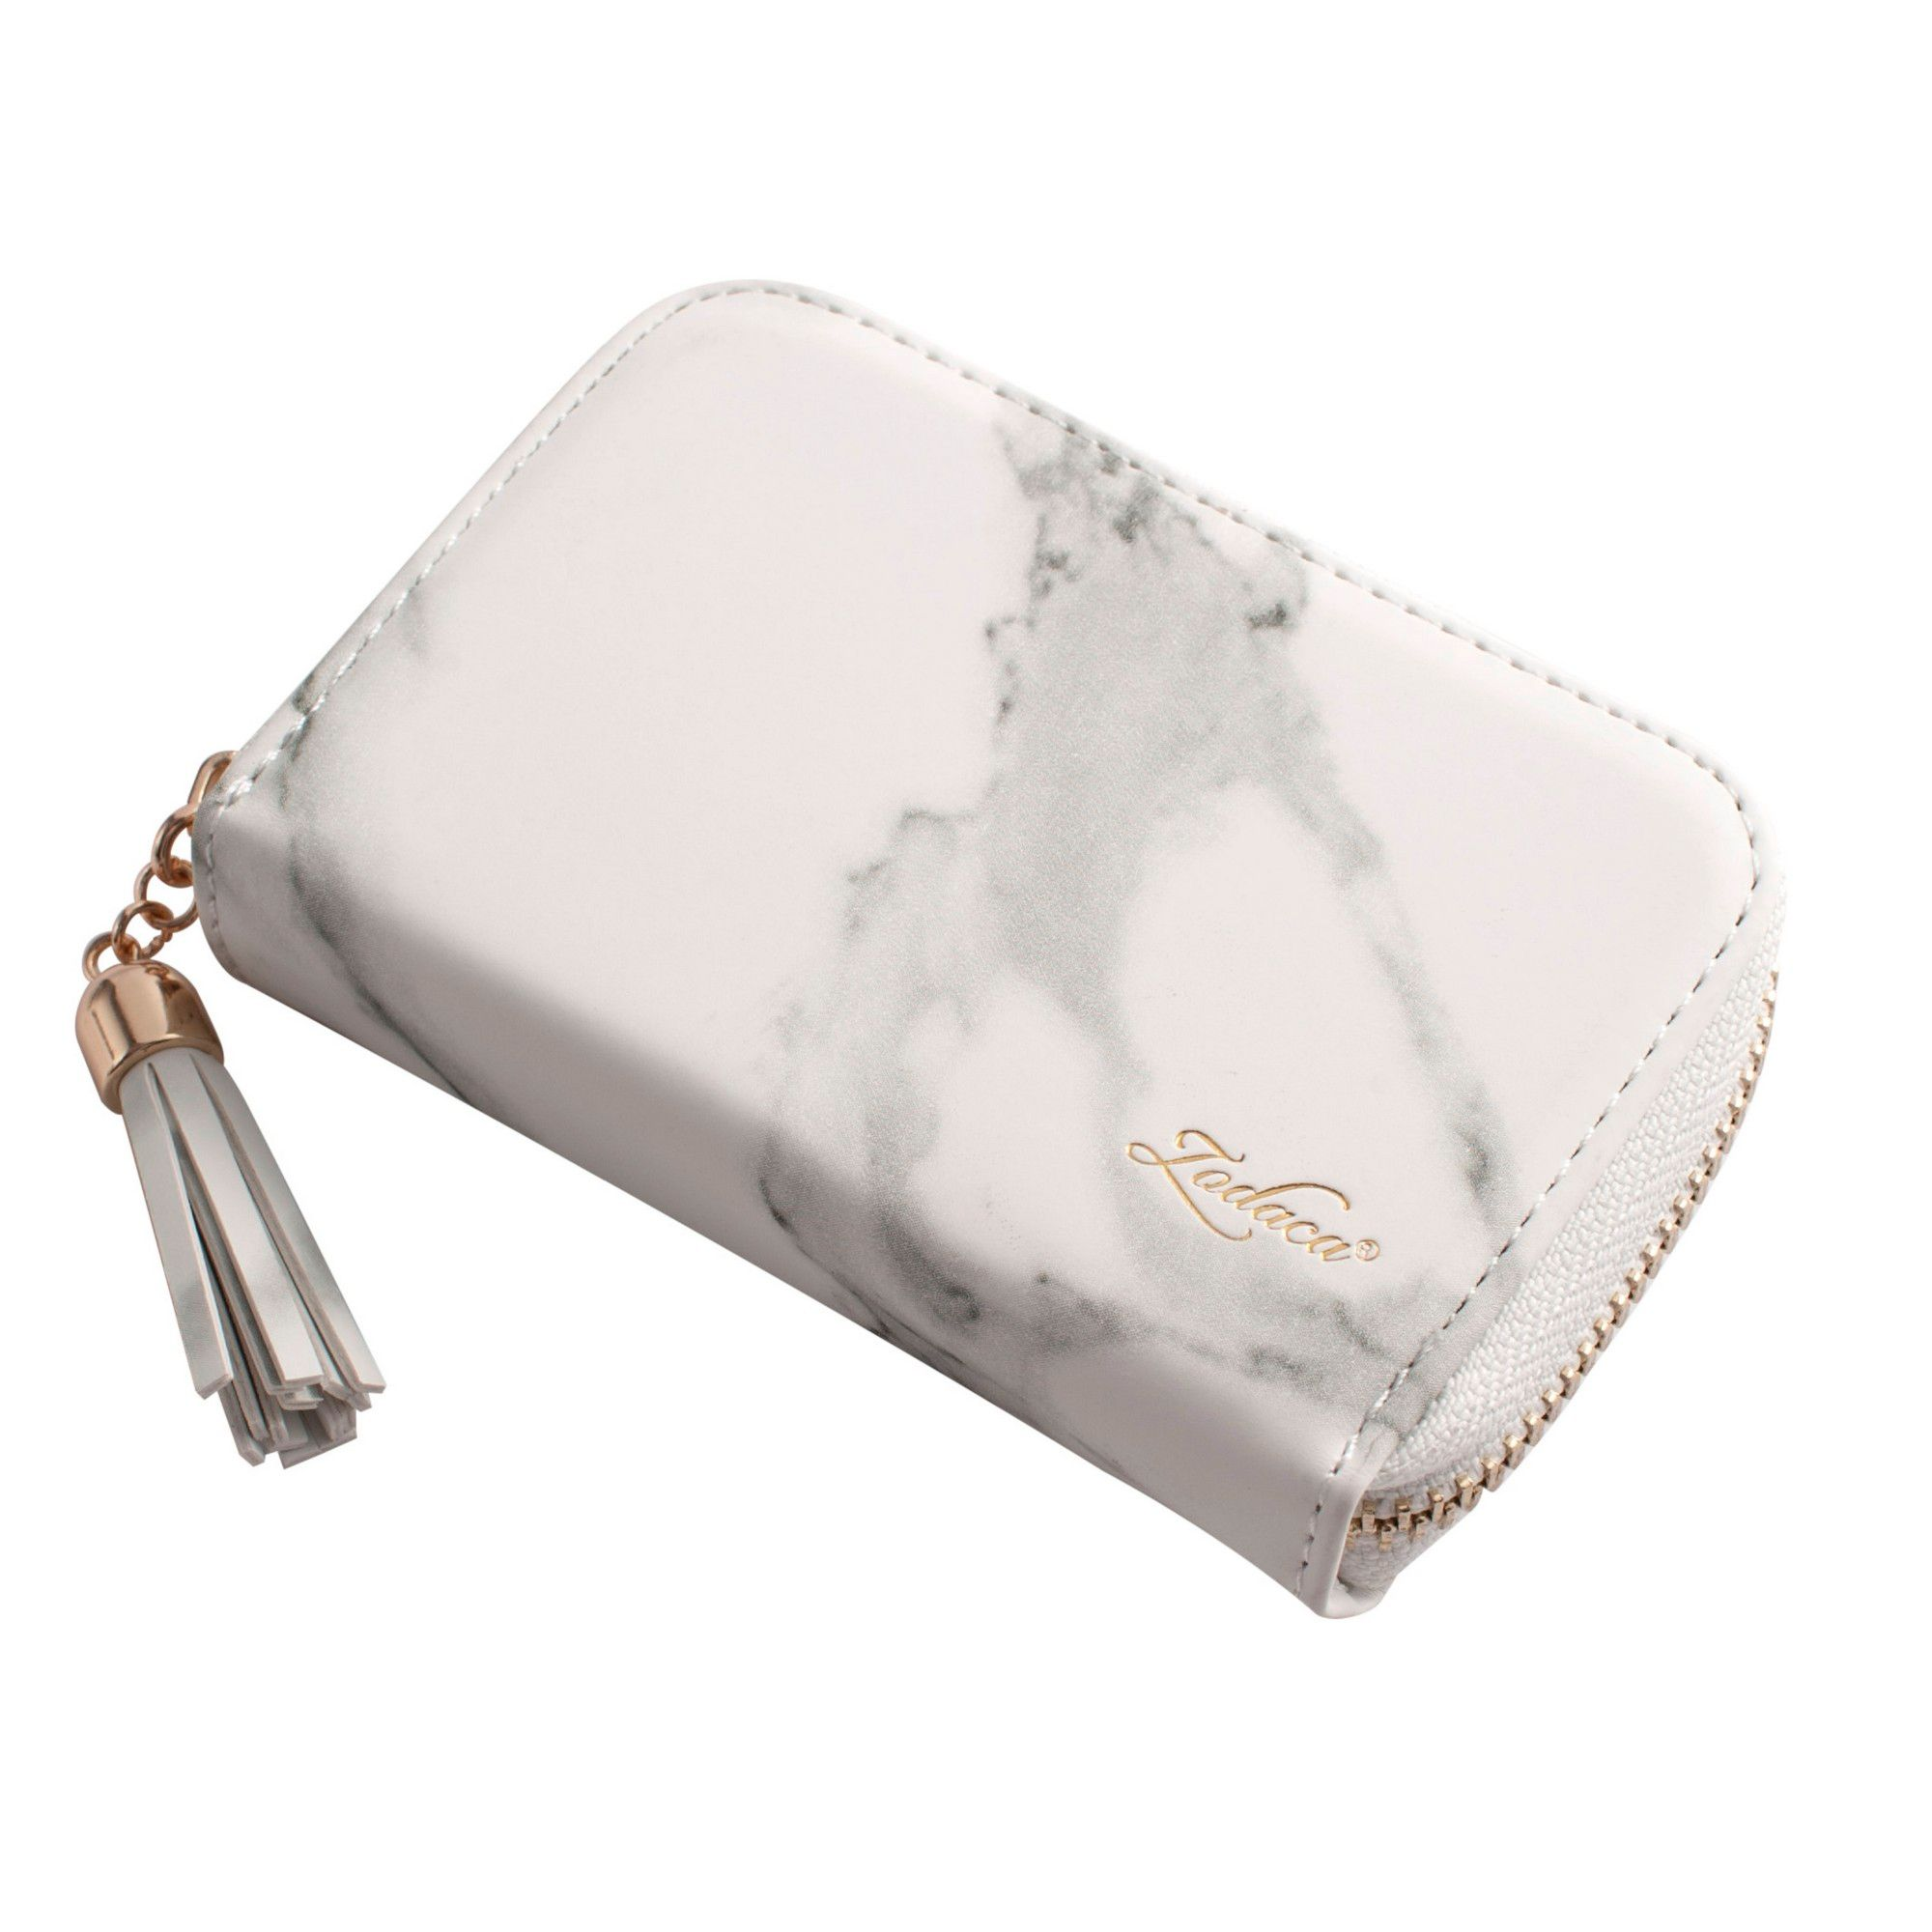 9910e85976d Card Holder Wallet for Women by Zodaca Fashion Small Leather Card Holder  Zip Coin Pouch Purse Cluth Mini Wallet 10-Slot for ID Credit Card - White  Marble